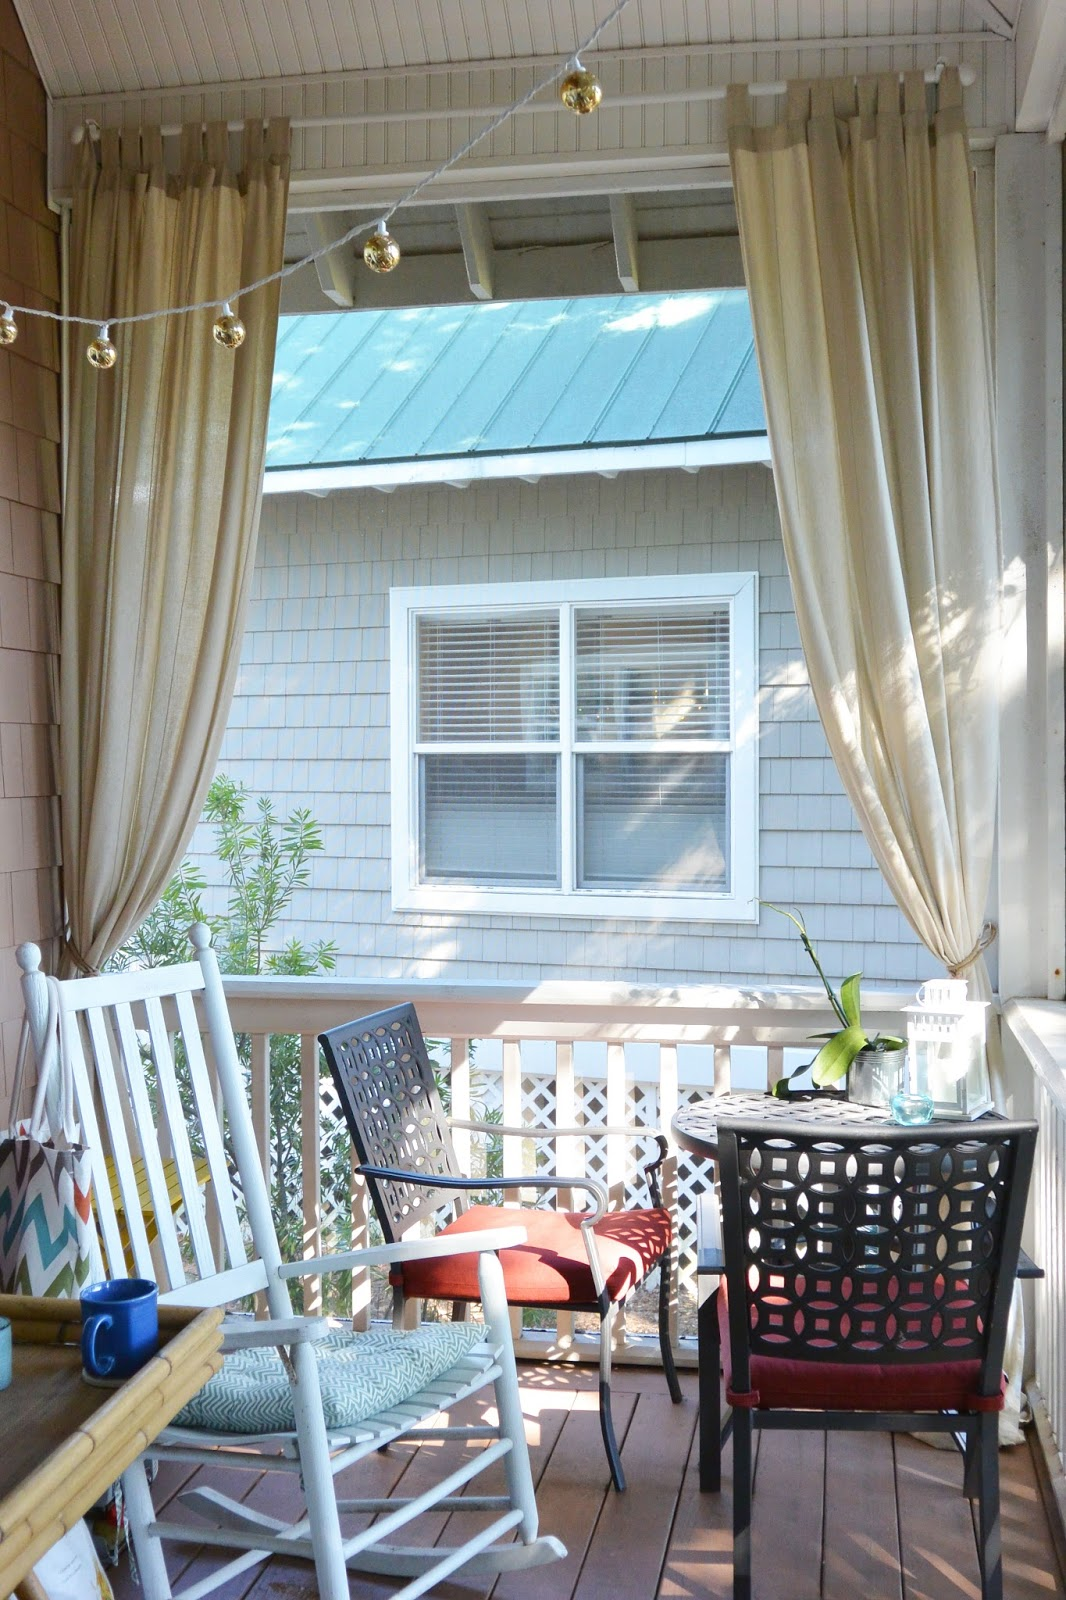 Diy outdoor curtains - Every Good Southerner Knows The Value Of A Screened In Porch It Keeps The Bugs Out It Gives You A Place To Sit And Drink Coffee In The Morning Rocking